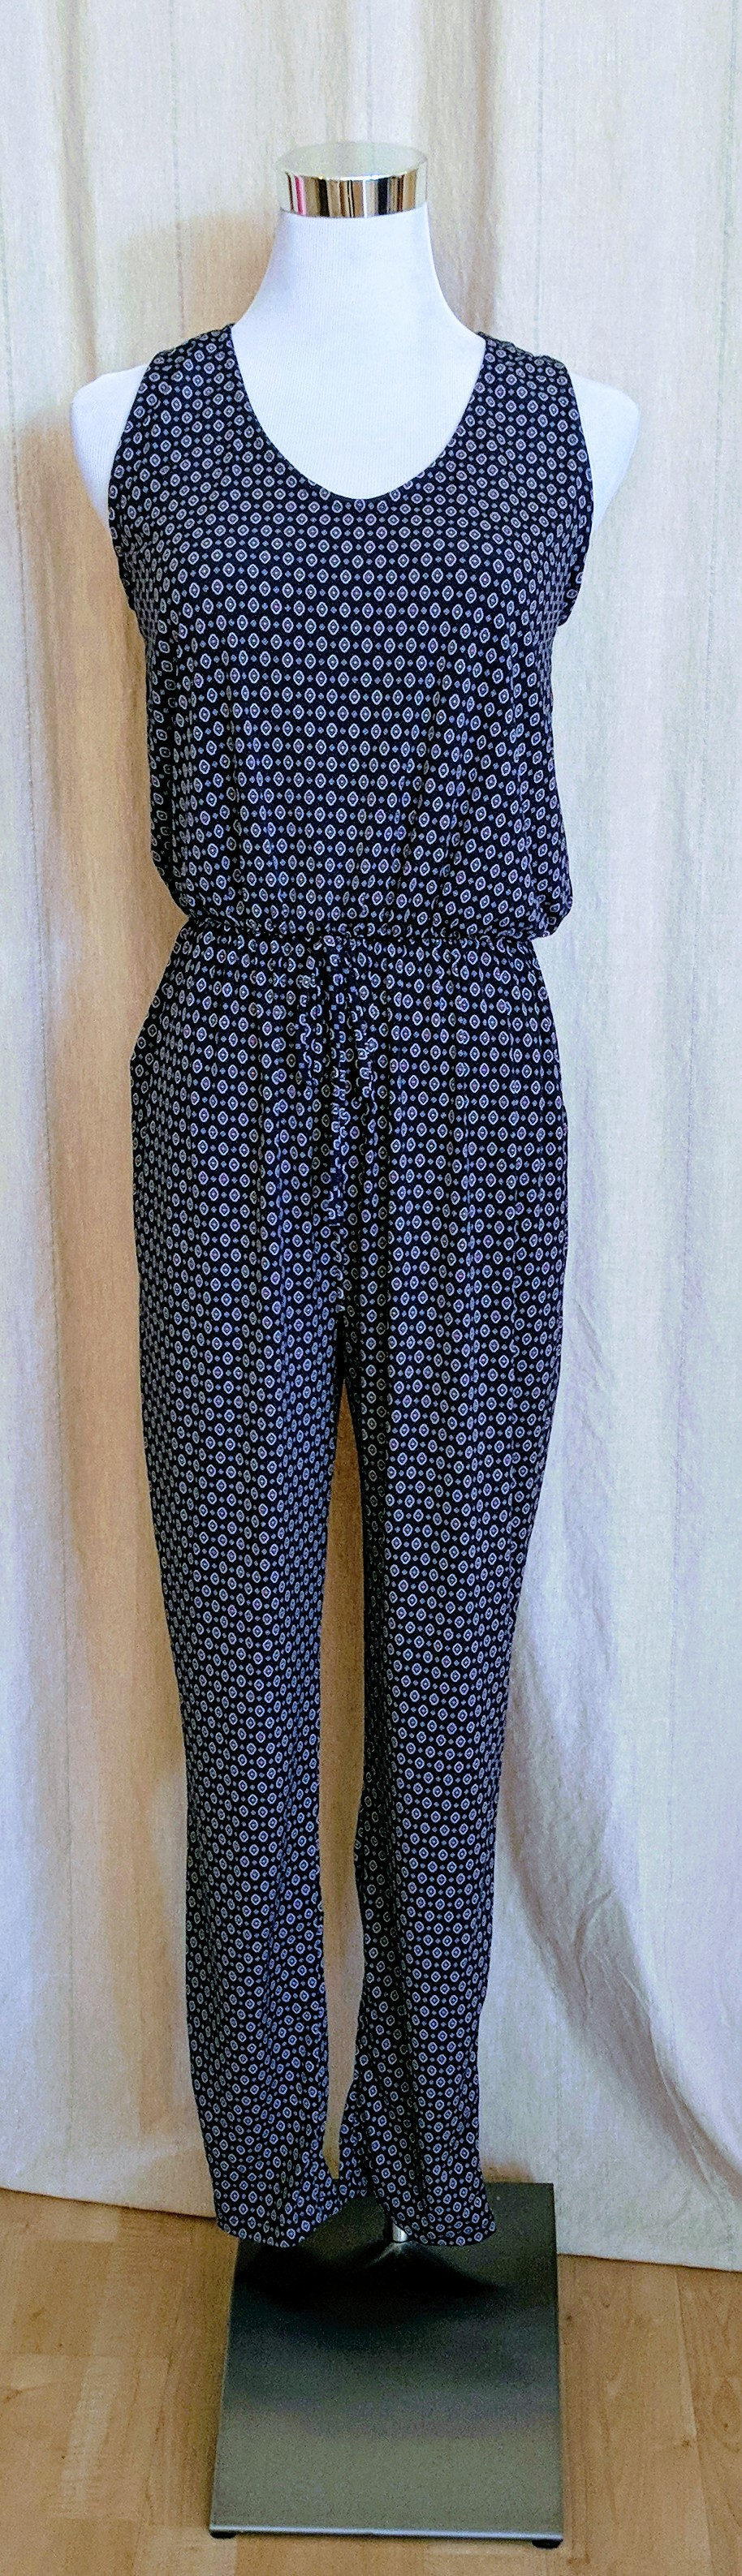 Navy jumpsuit with key hole detail on back and pockets.